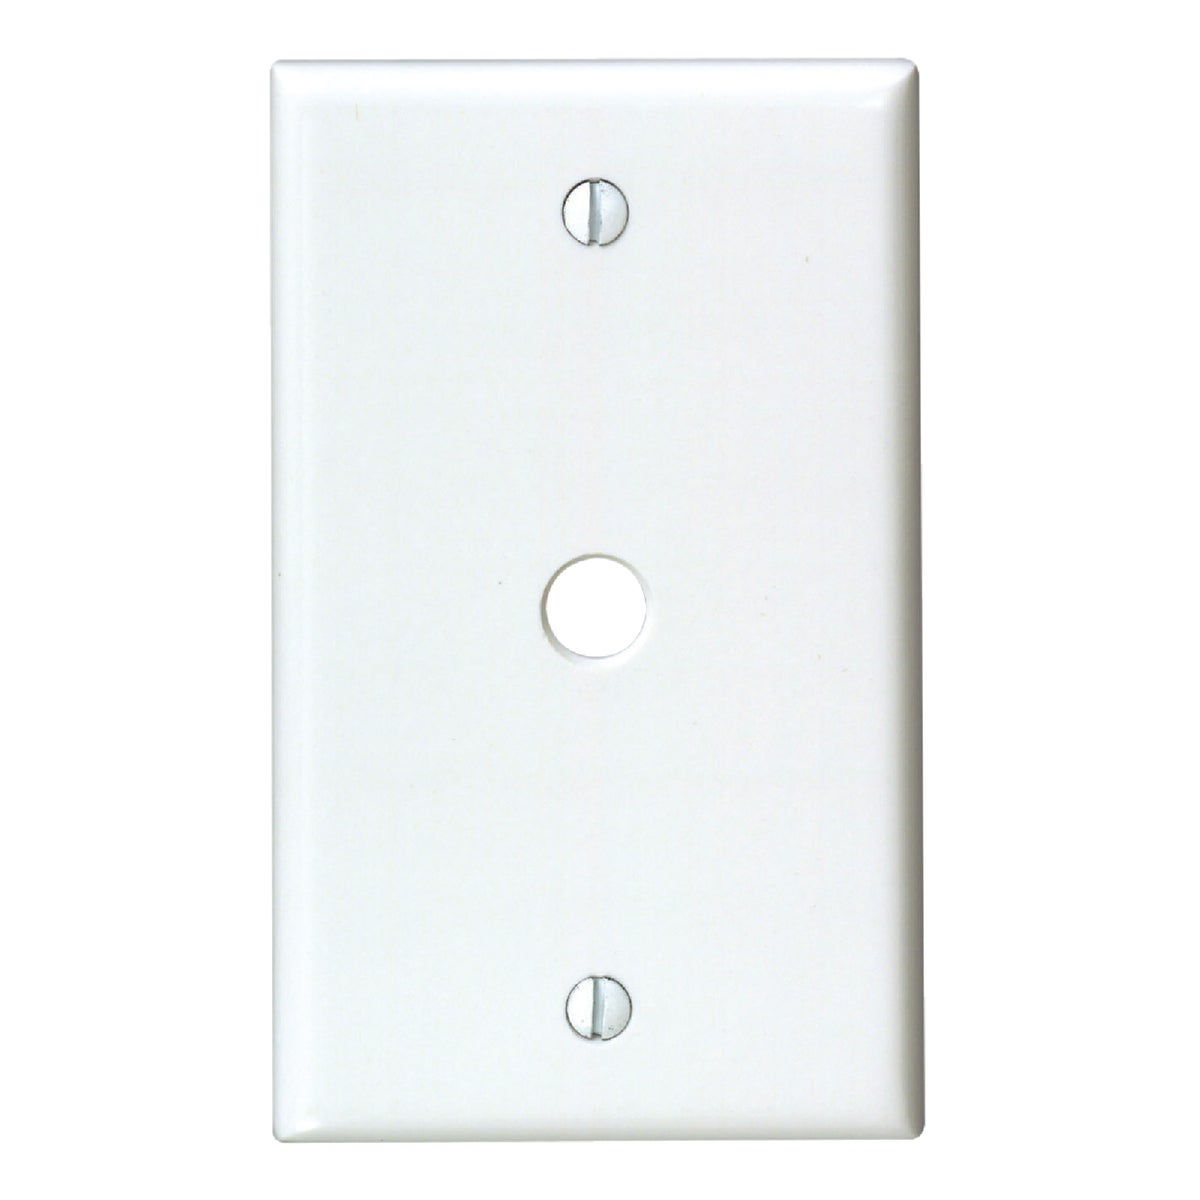 WHT PHONE WALL PLATE